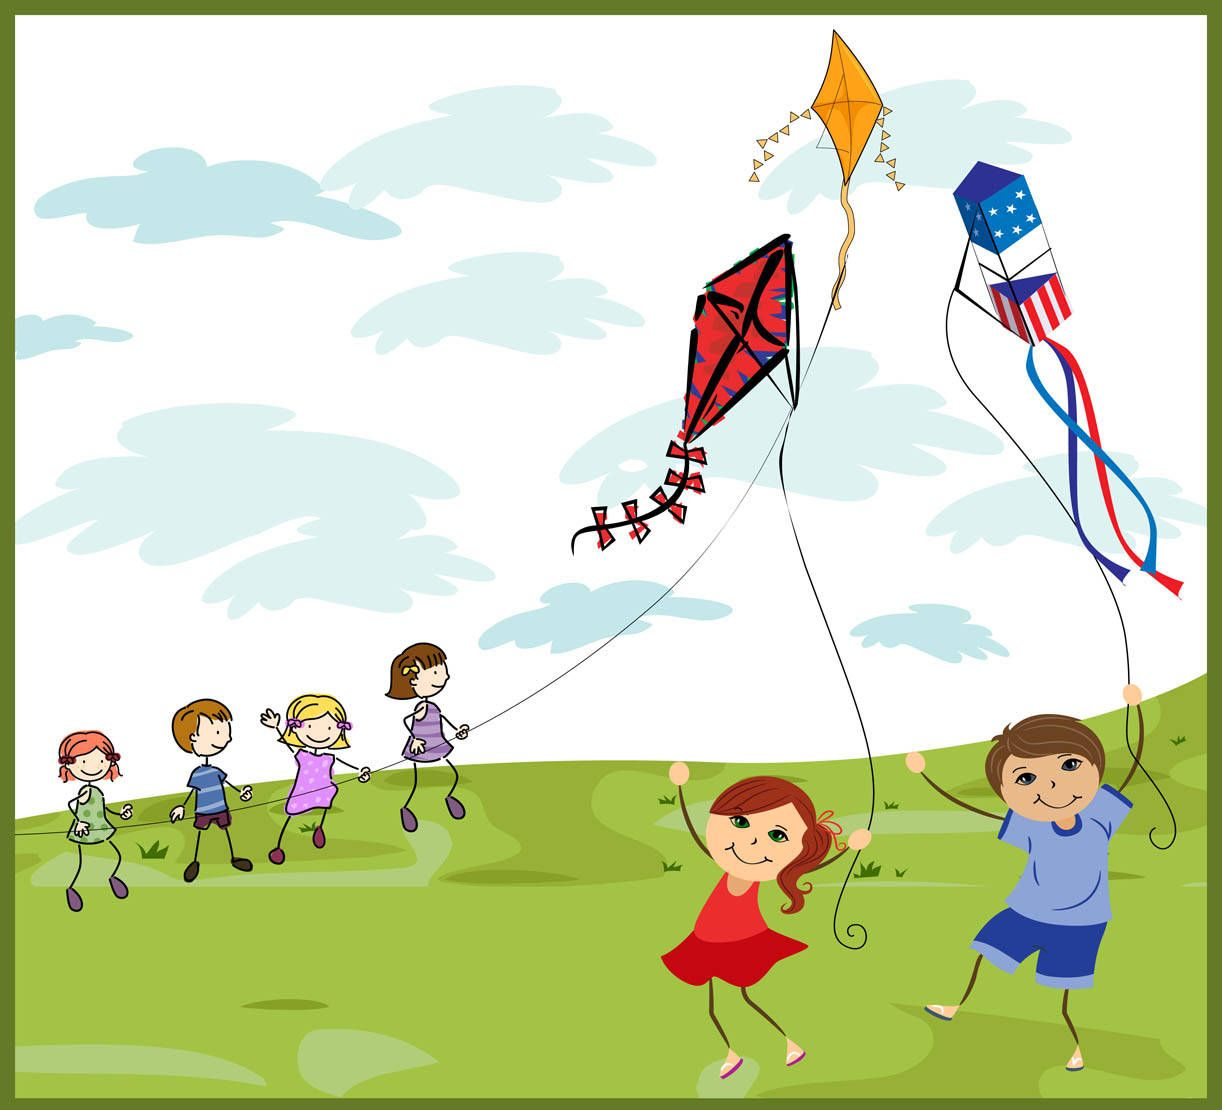 kids flying kites back to memories and kites clip art of all kinds of kites box kites red kites blue kites and people flying kites